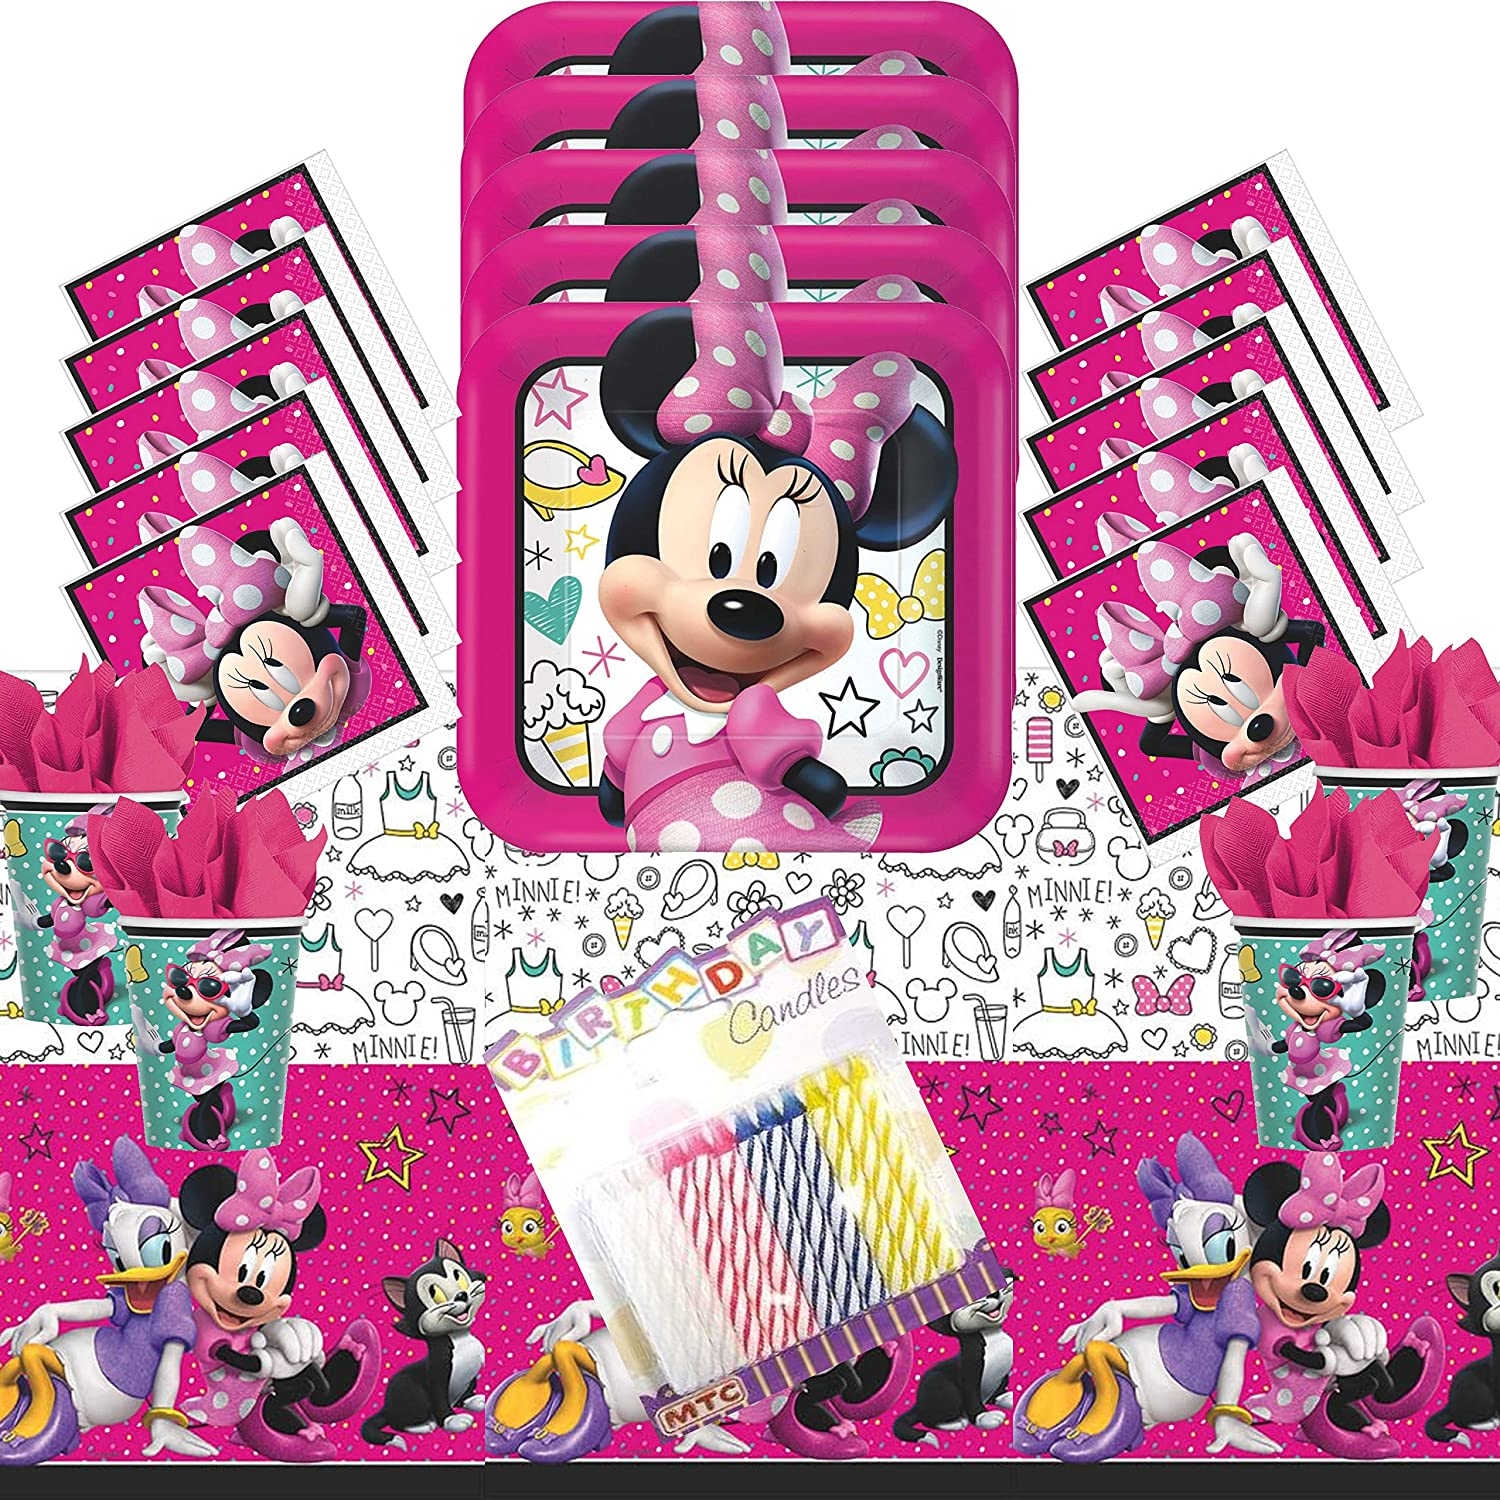 Minnie Mouse Party Supplies for 16 Guests